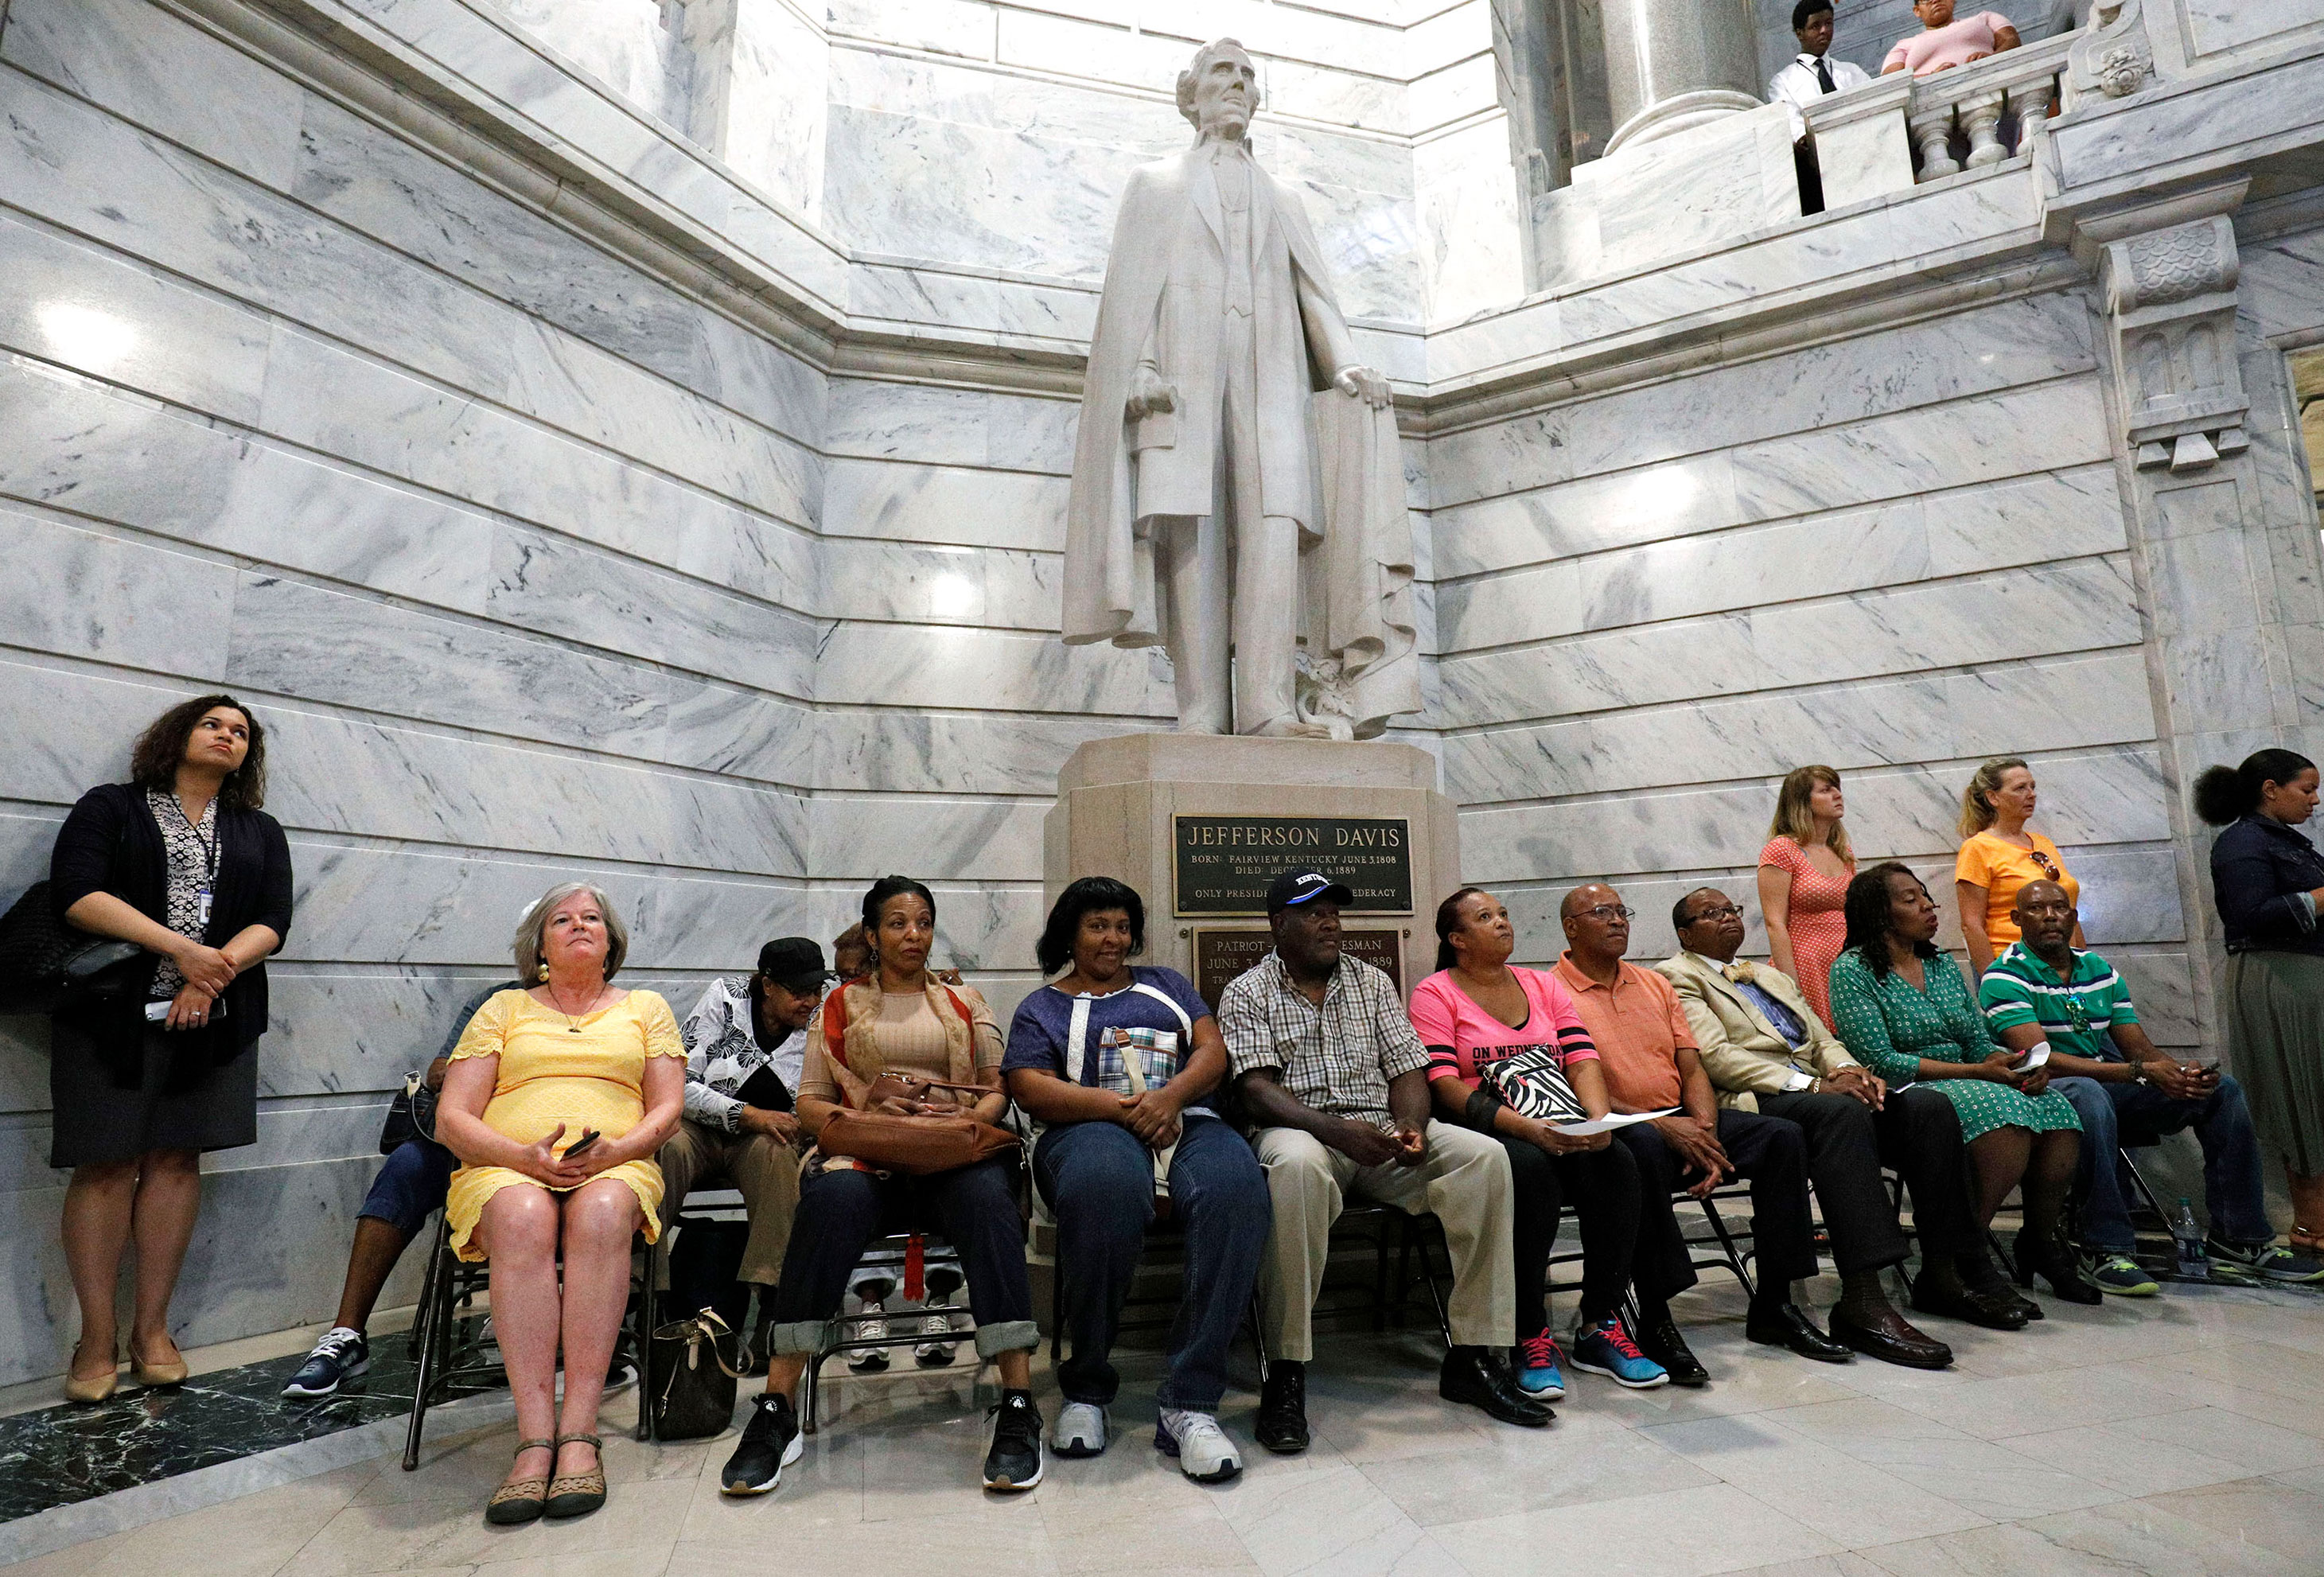 People attend a rally for the removal of a statue of Confederate President Jefferson Davis from the Kentucky State Capitol rotunda August 30, 2017 in Frankfort, Kentucky.